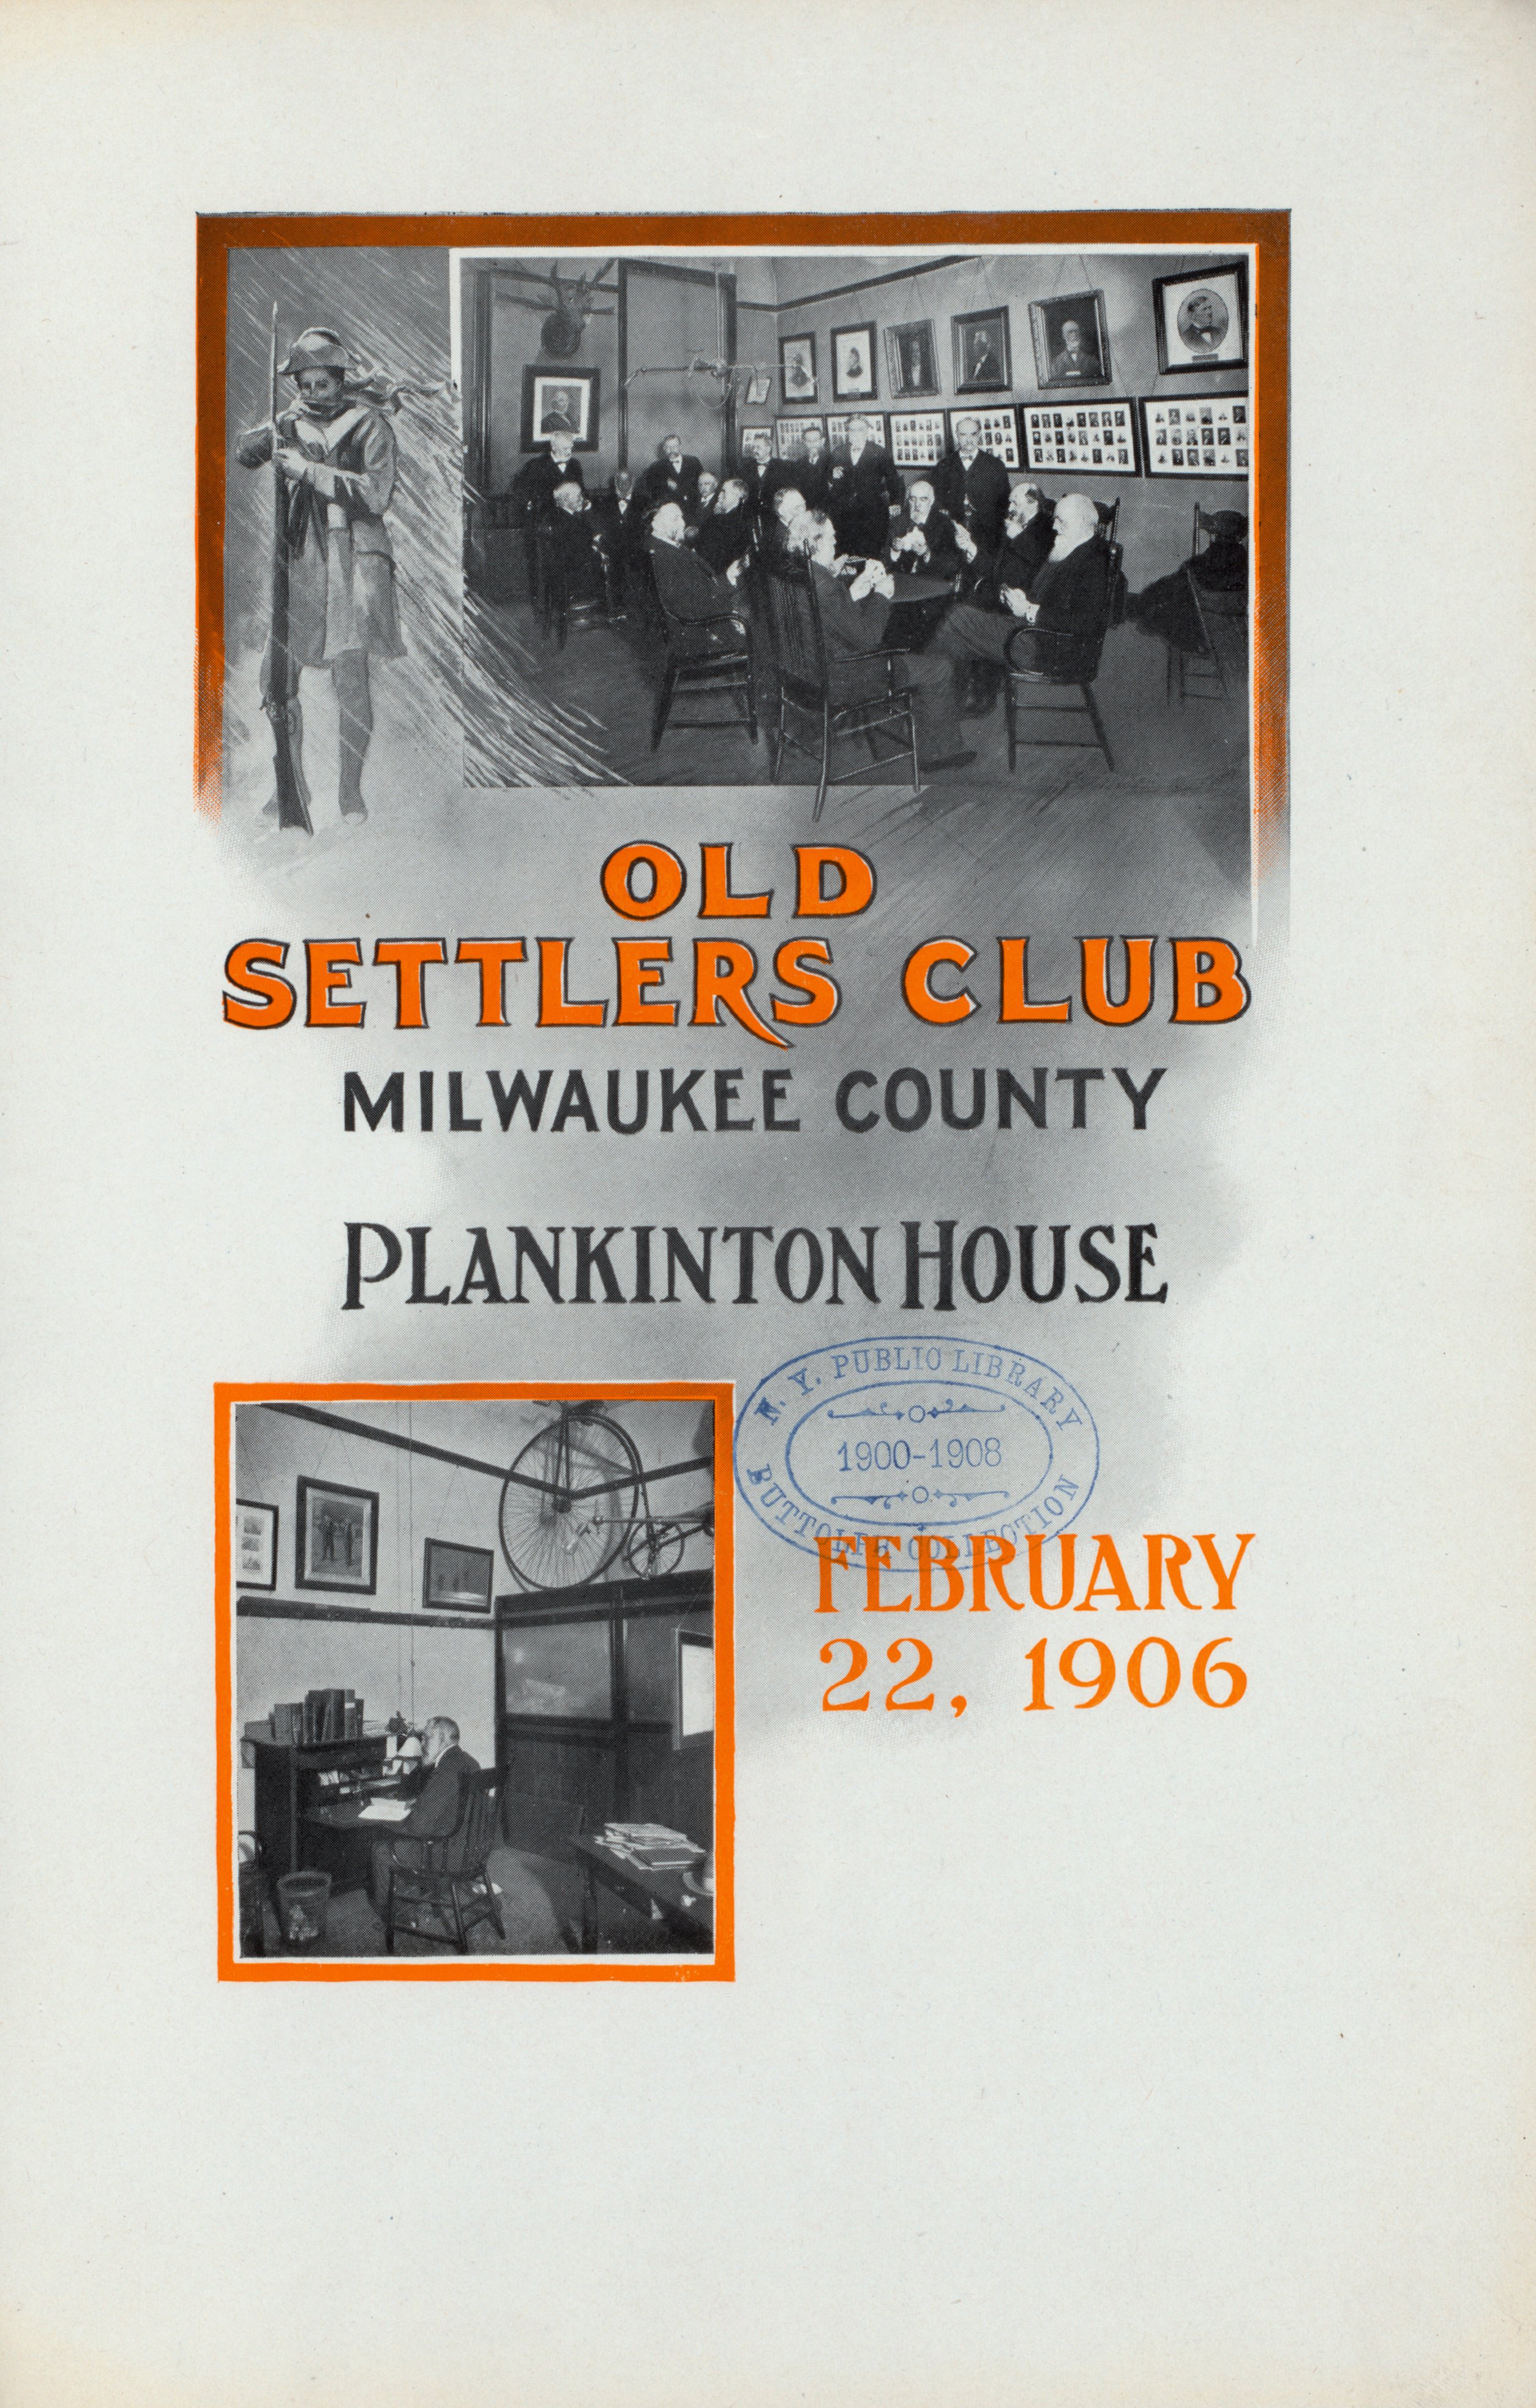 <table class=&quot;lightbox&quot;><tr><td colspan=2 class=&quot;lightbox-title&quot;>Old Settlers' Club Program Cover</td></tr><tr><td colspan=2 class=&quot;lightbox-caption&quot;>This is the front cover of a program for a dinner held by the Old Settlers' Club at the Plankinton House in 1906. The program contains a list of members, toasts, and even the menu of that evening. </td></tr><tr><td colspan=2 class=&quot;lightbox-spacer&quot;></td></tr><tr class=&quot;lightbox-detail&quot;><td class=&quot;cell-title&quot;>Source: </td><td class=&quot;cell-value&quot;>From the Buttolph Collection of Menus. Rare Book Division, New York Public Library. <br /><a href=&quot;https://digitalcollections.nypl.org/items/510d47db-7ad5-a3d9-e040-e00a18064a99#/?uuid=510d47db-7ac7-a3d9-e040-e00a18064a99&quot; target=&quot;_blank&quot;>New York Public Library</a></td></tr><tr class=&quot;filler-row&quot;><td colspan=2>&nbsp;</td></tr></table>